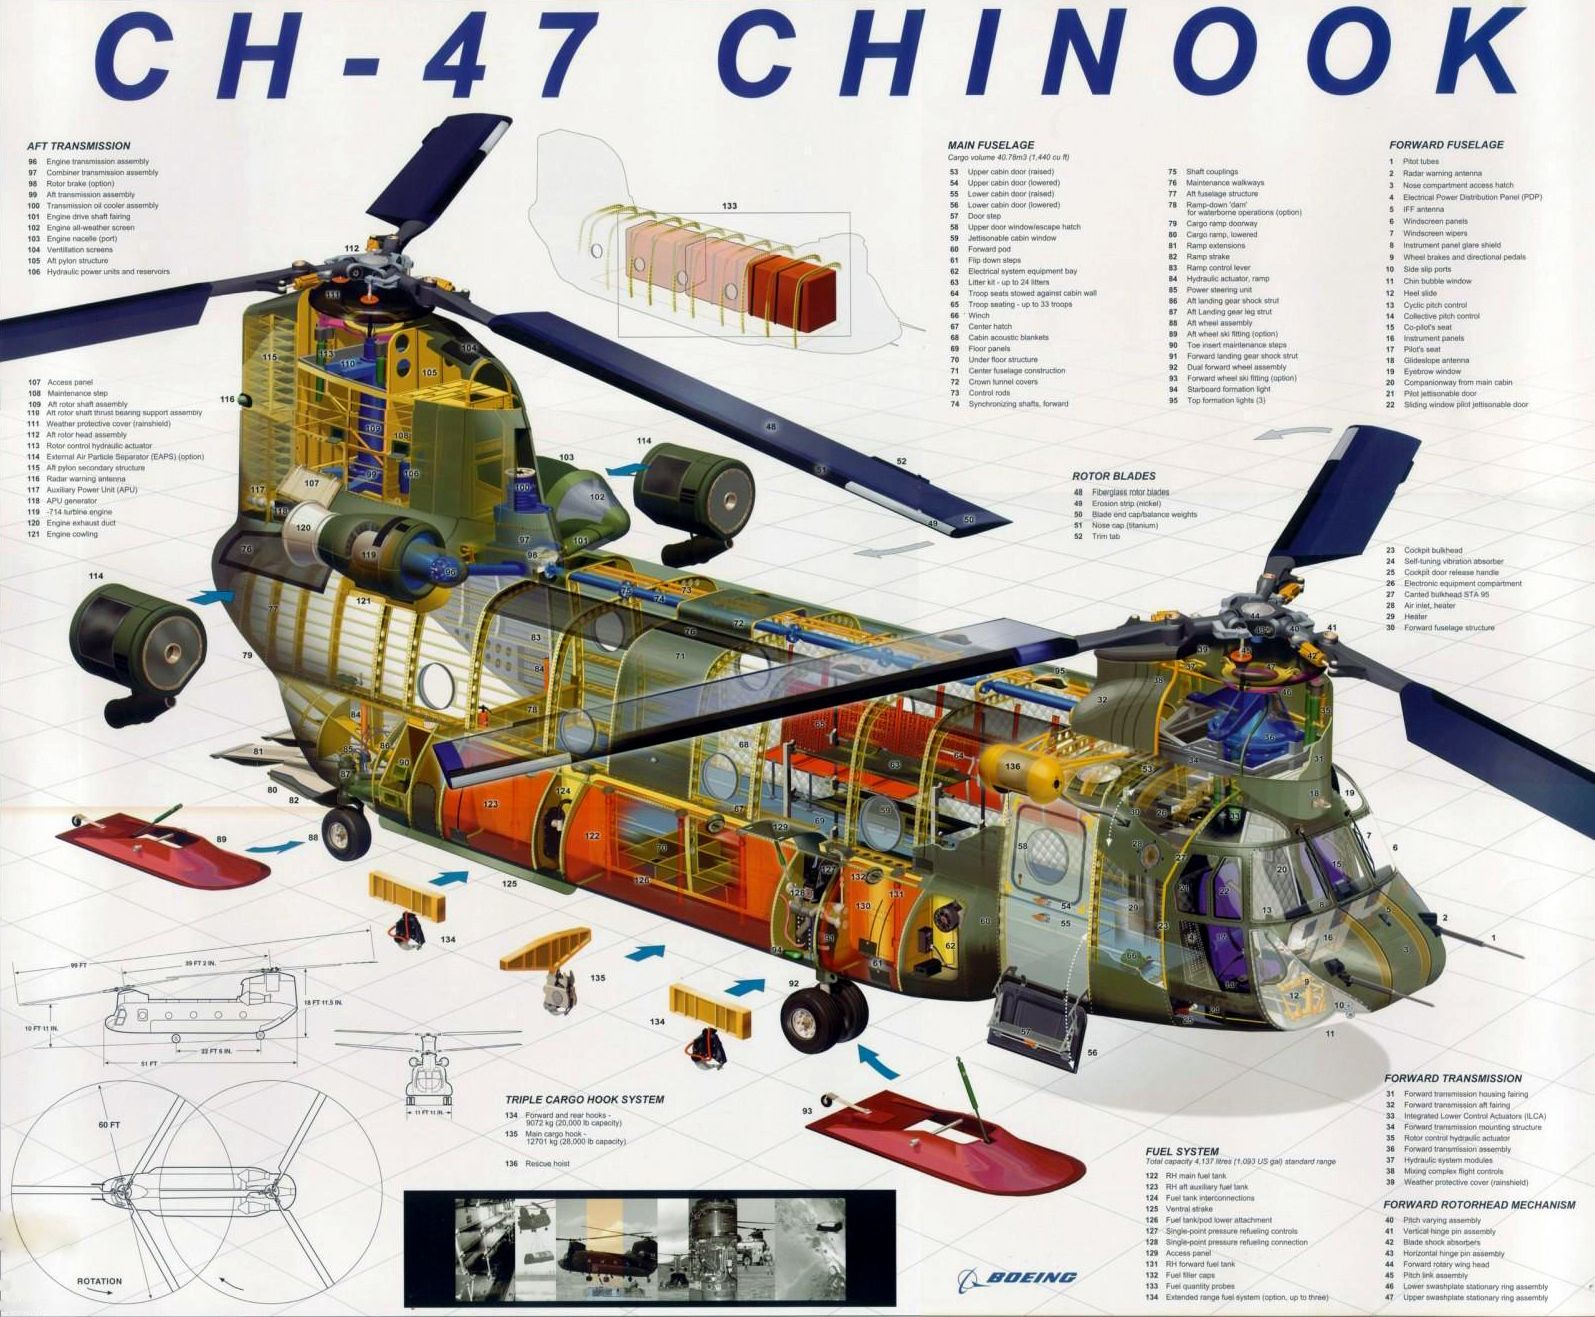 ch 47 chinook cutaway by boeing [ 1595 x 1317 Pixel ]